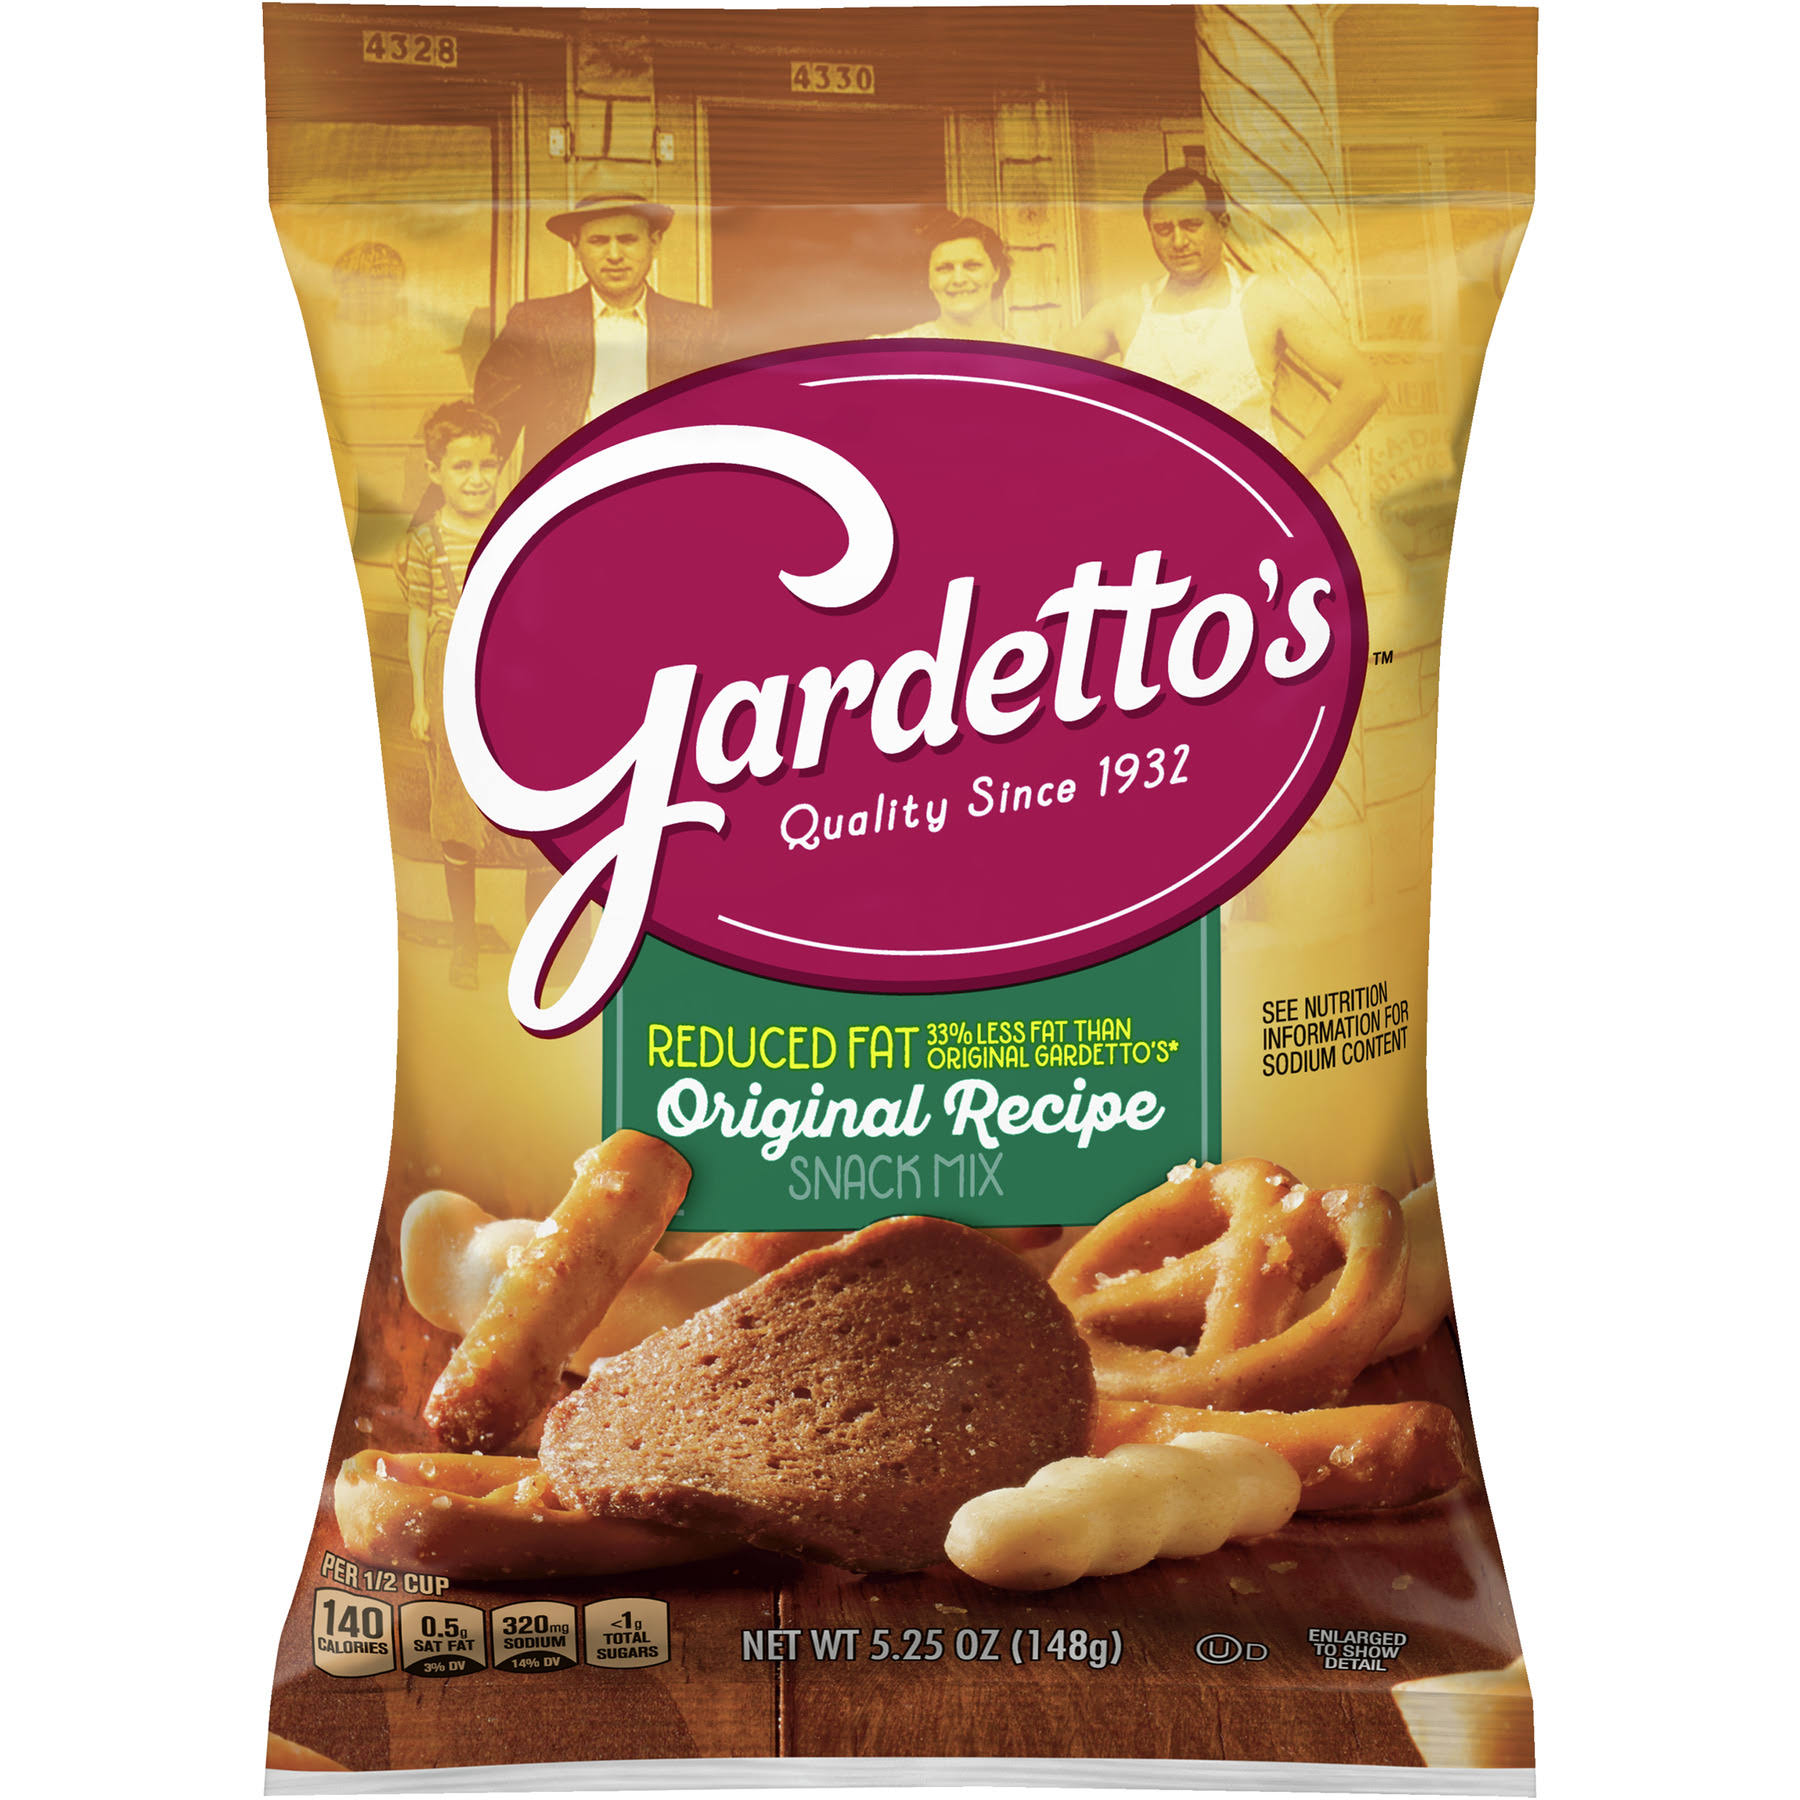 Gardettos Snack Mix, Reduced Fat, Original Recipe - 5.25 oz